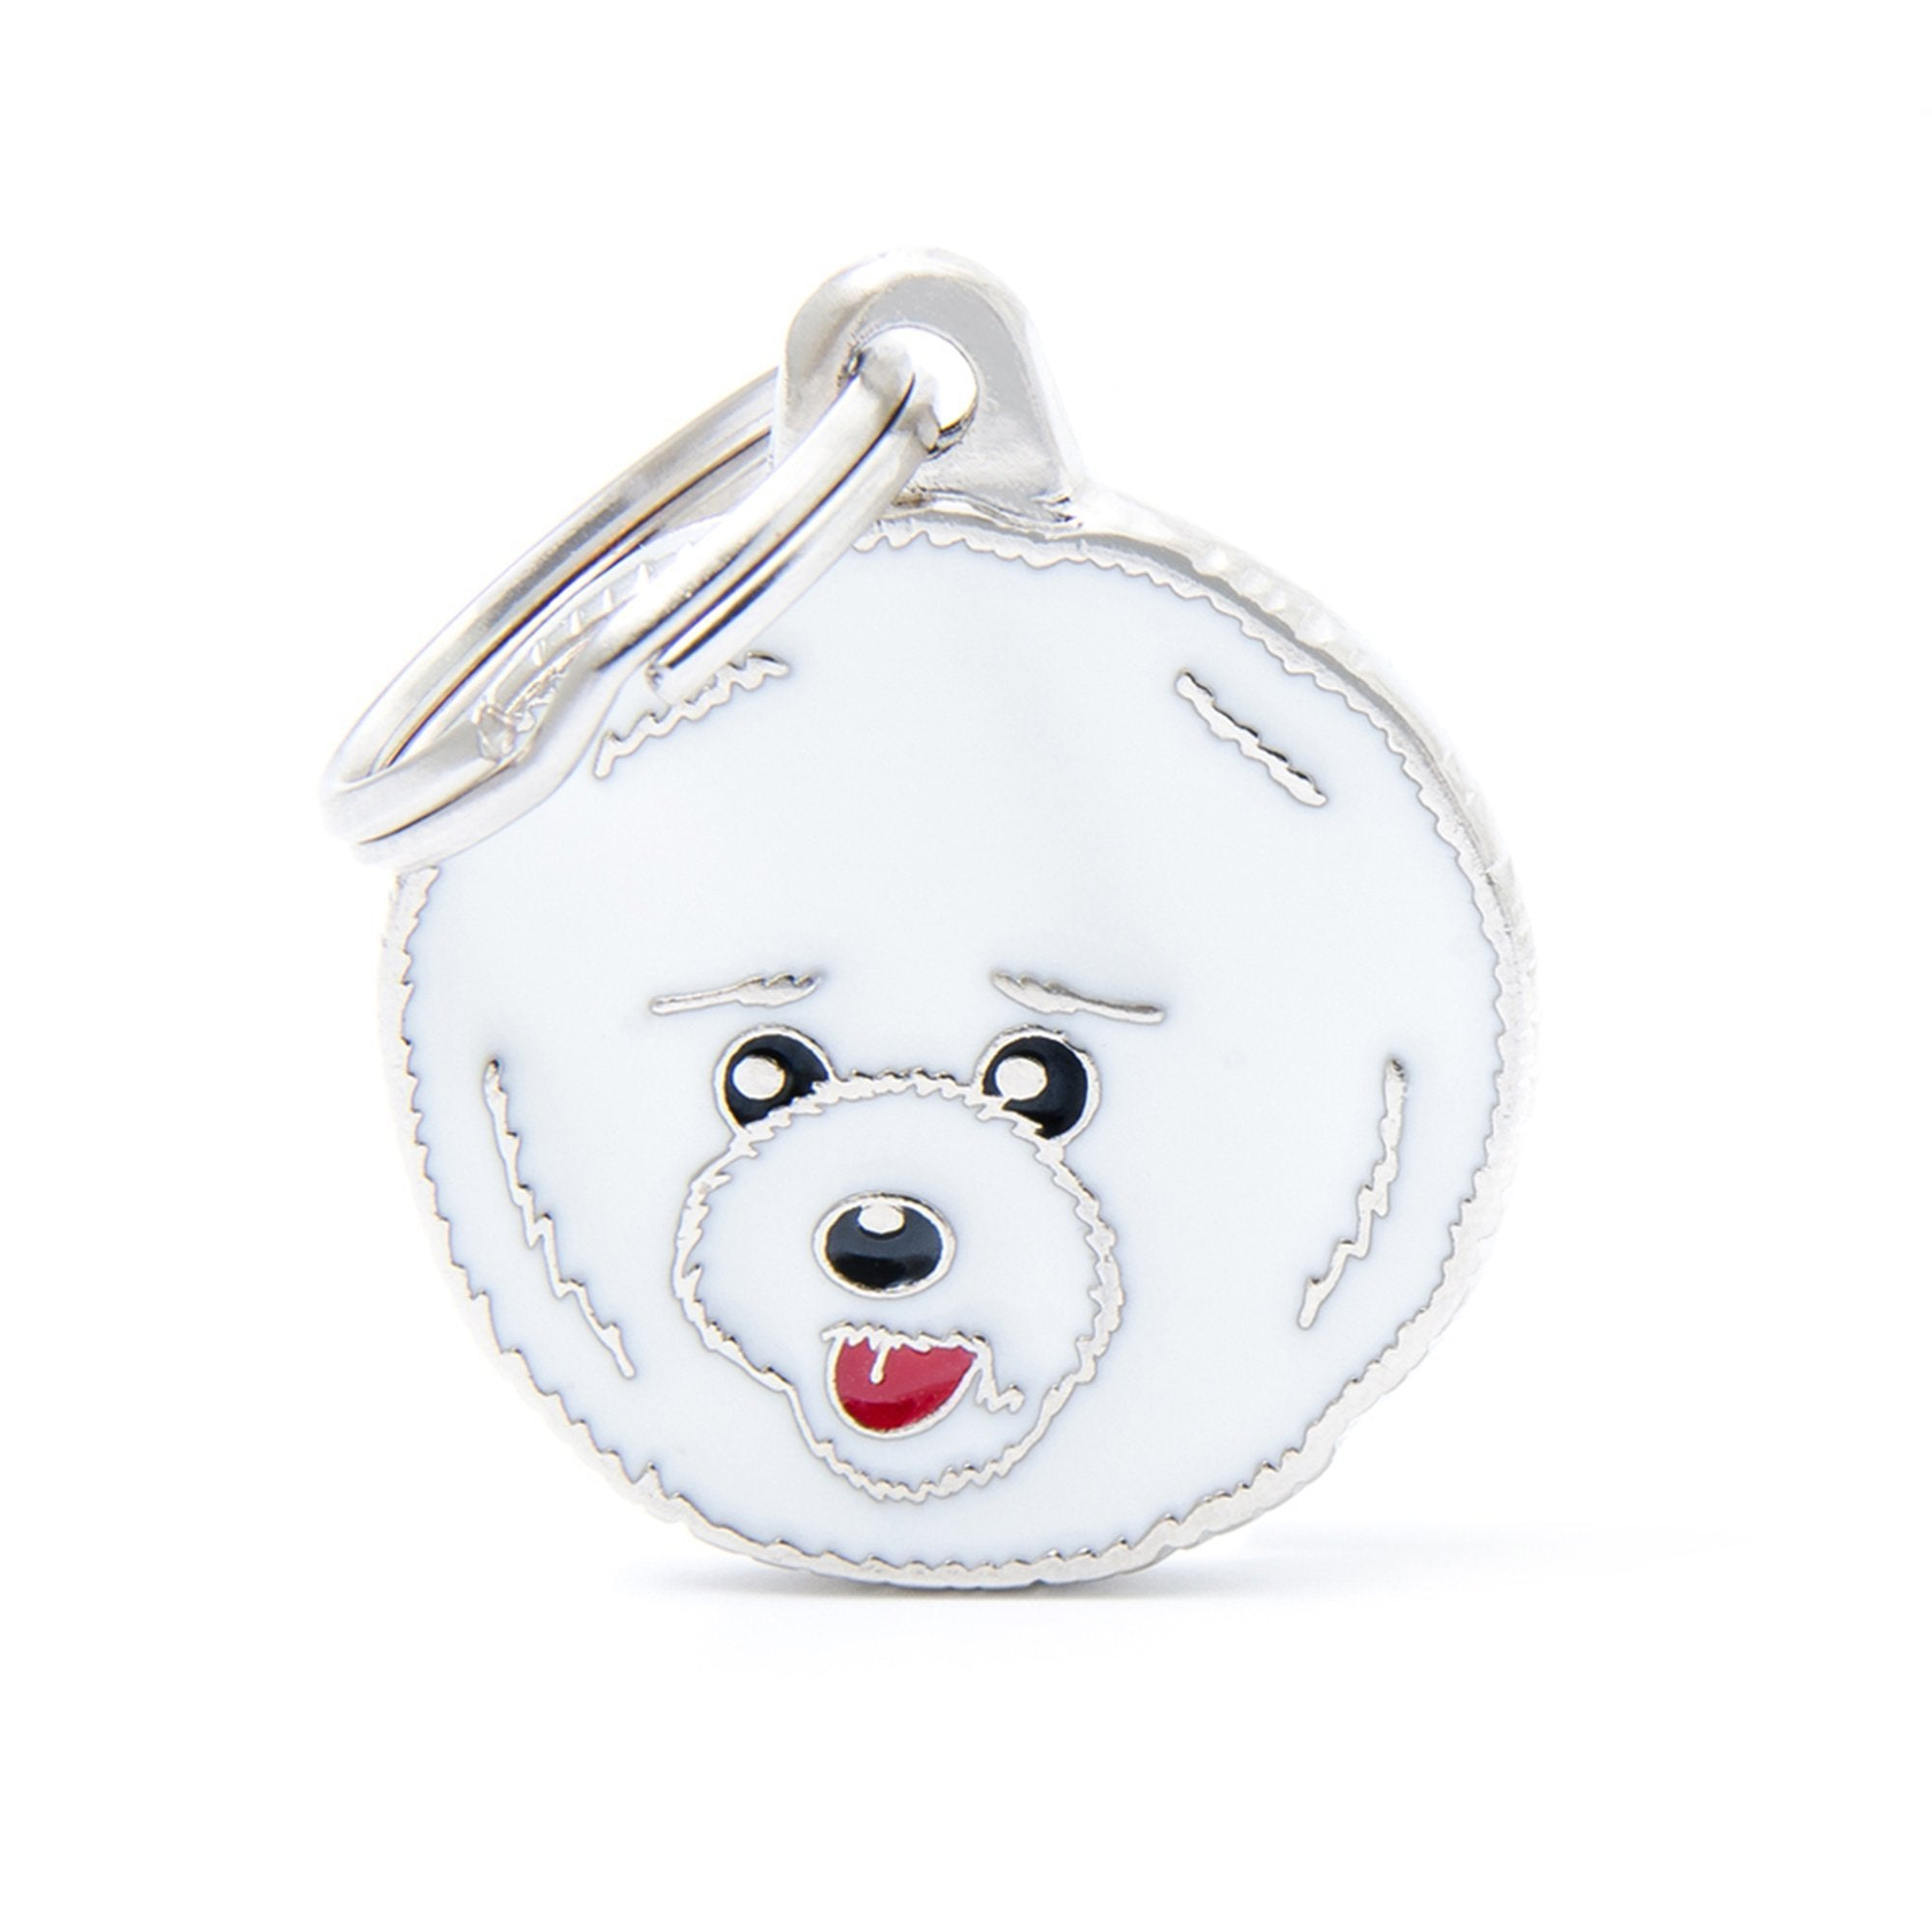 My Family Friends Bichon Frise Dog I.D. Tag